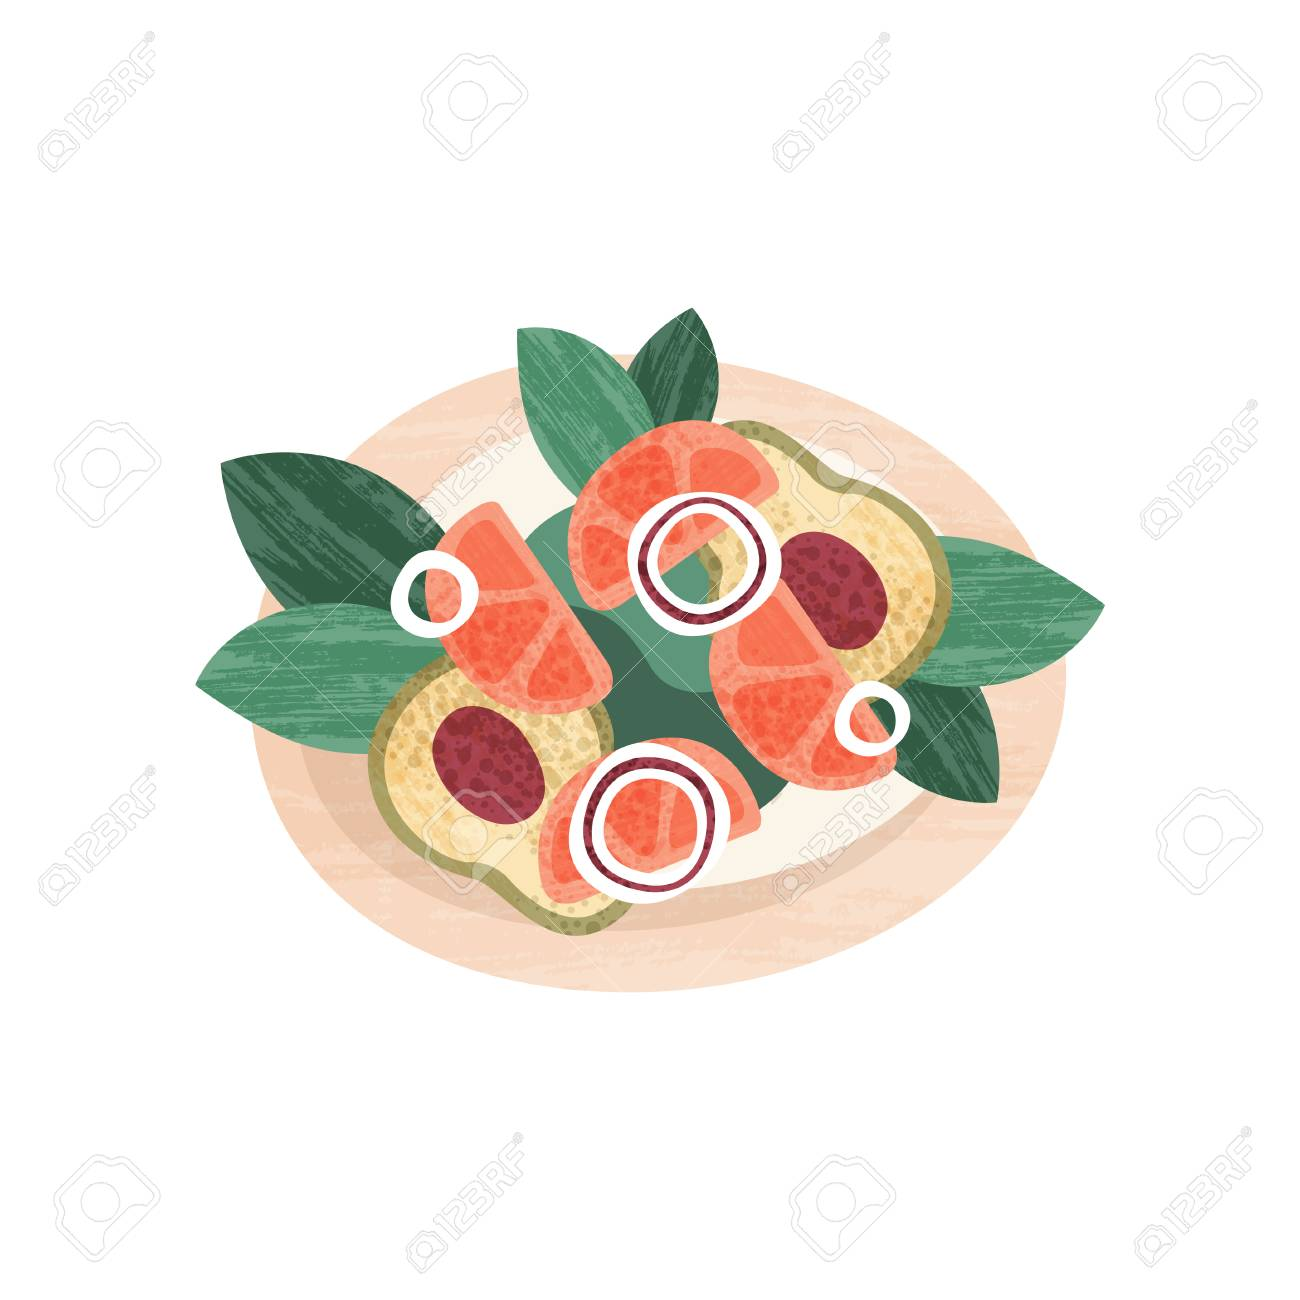 Delicious salad with fresh vegetables  Healthy nutrition theme